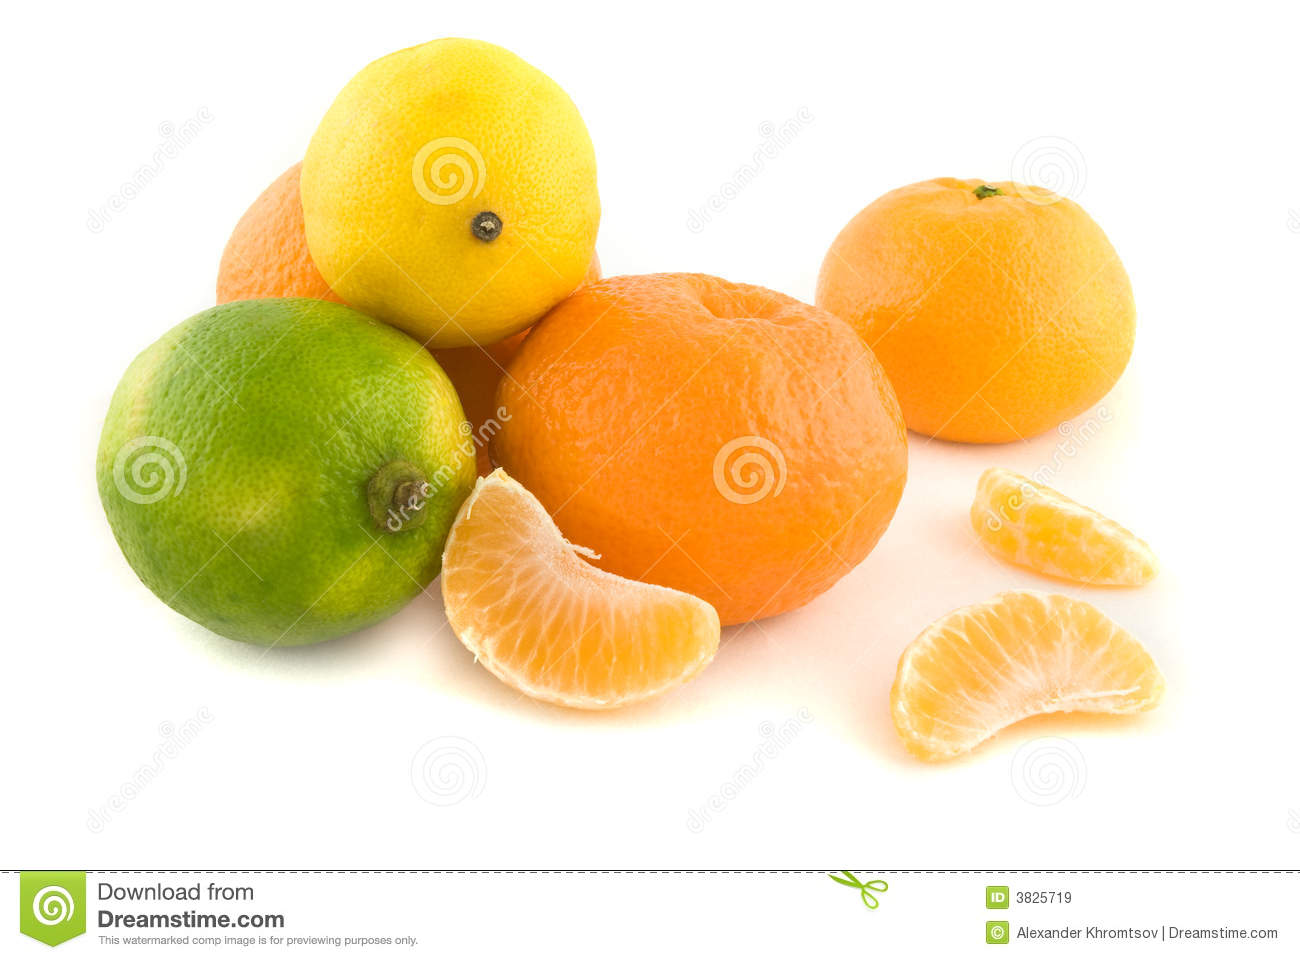 Oranges, Lime and Lemons